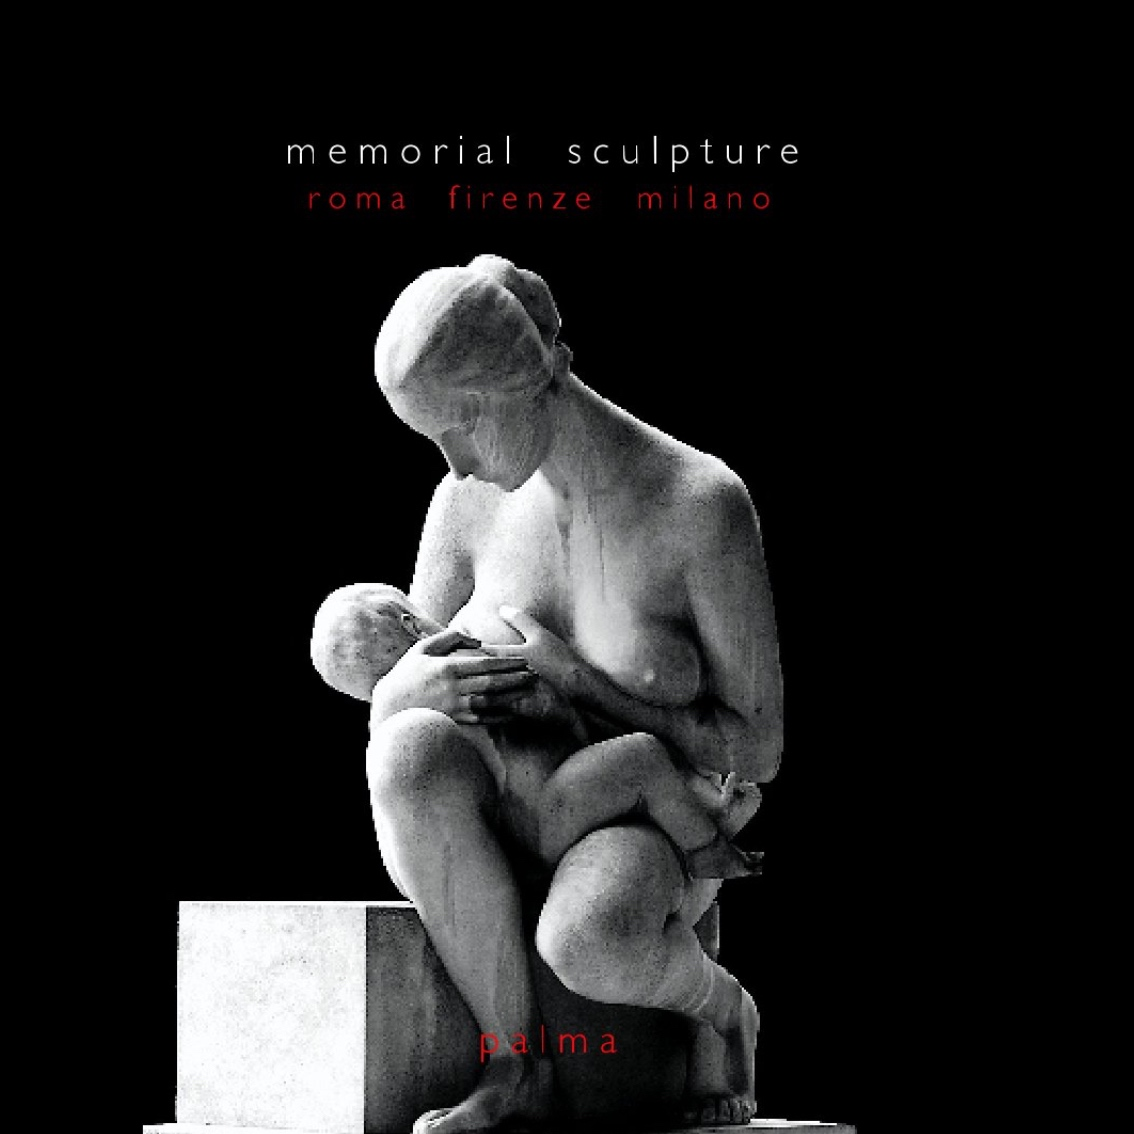 "memorial Sculpture - italian memorial sculpture - roma . firenze . milano7"" x 7"" square formatpreview and purchase at blurb.com"